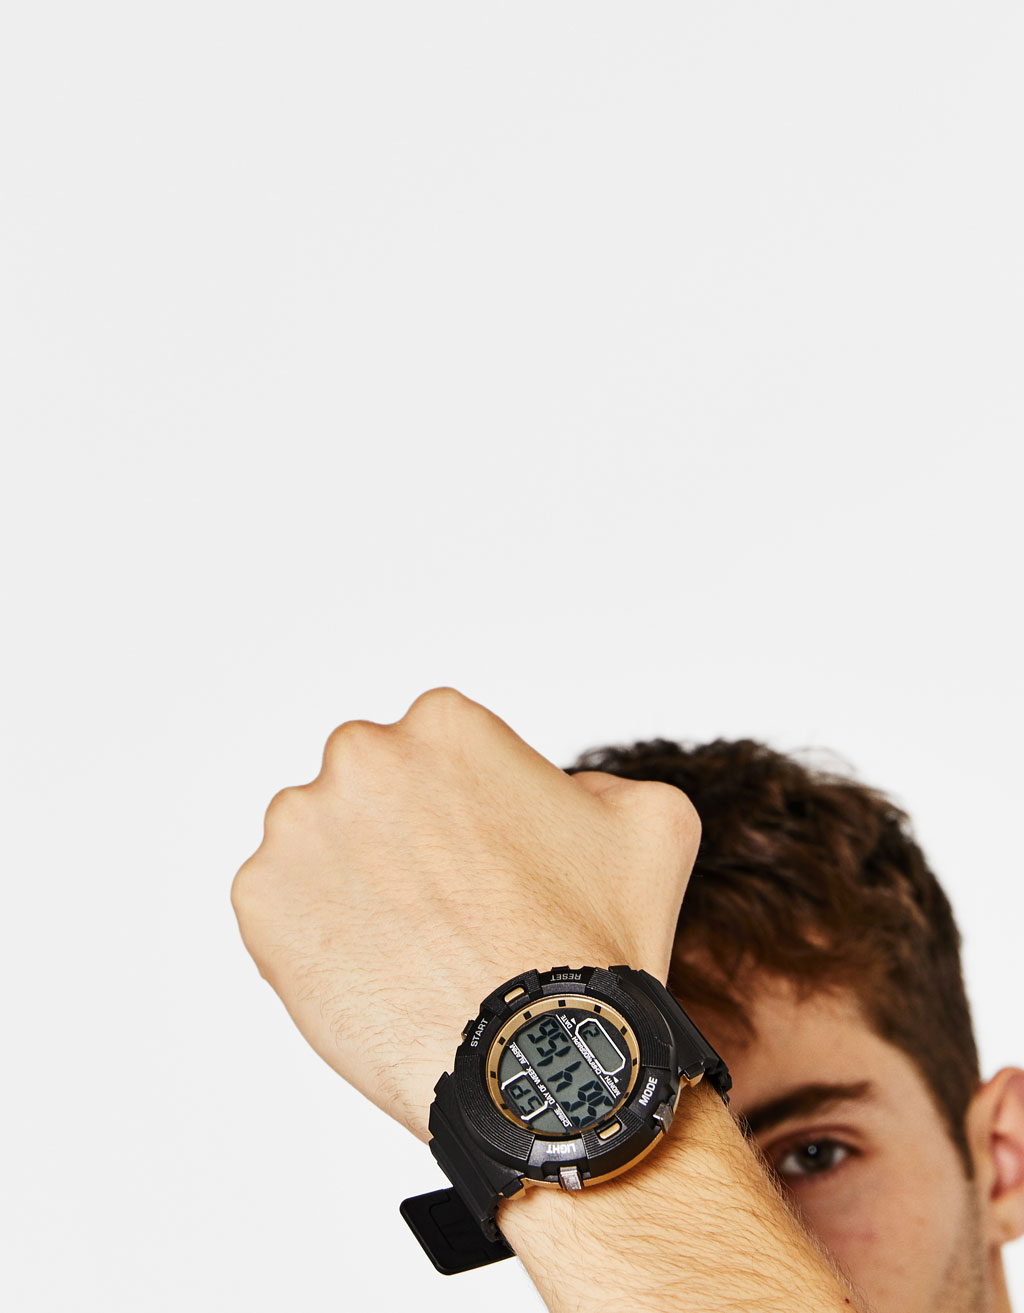 Digital watch with round face